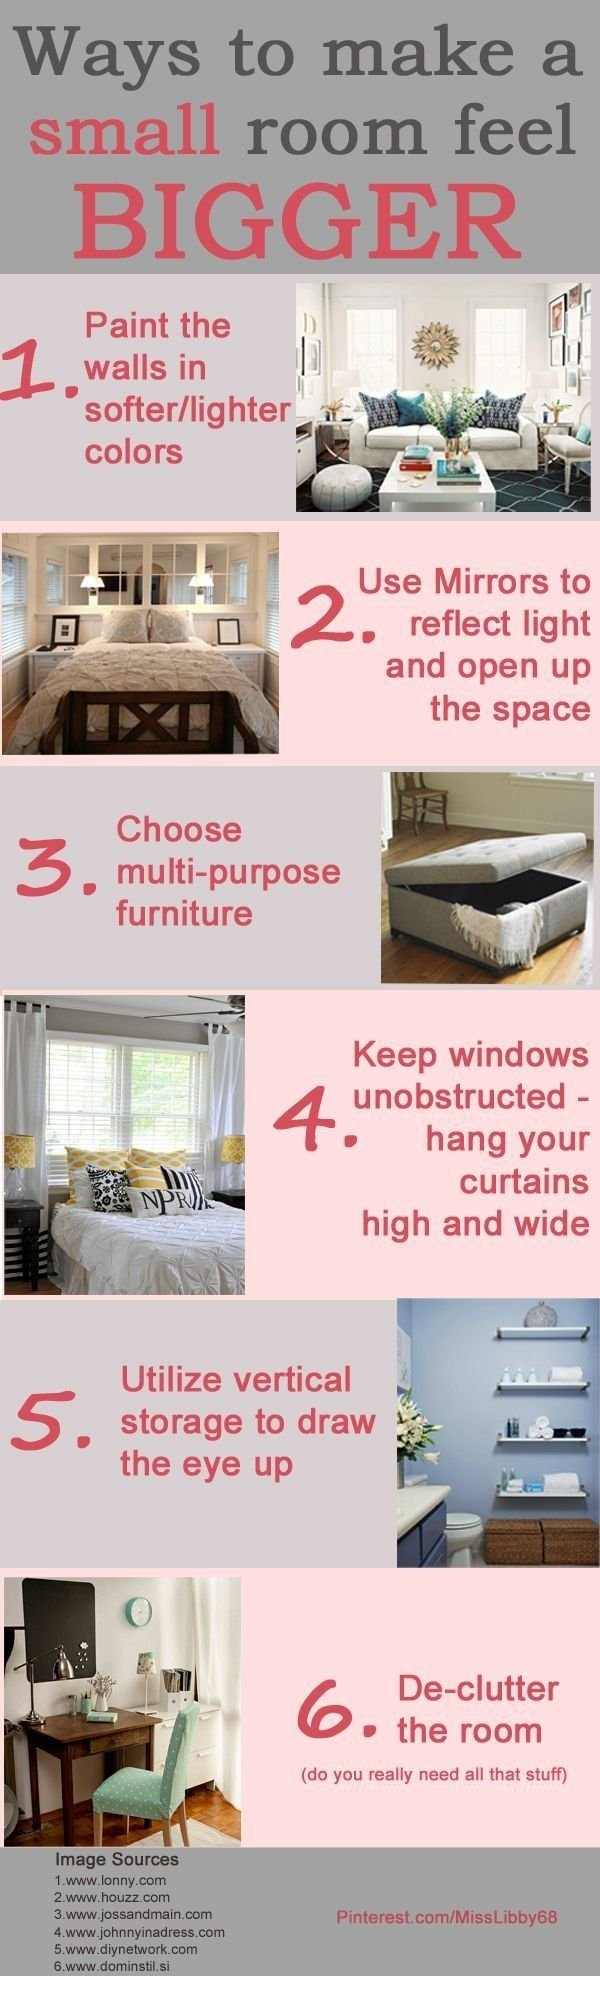 10 pretty ideas to spice up the bedroom for her for Things to spice up the bedroom for him